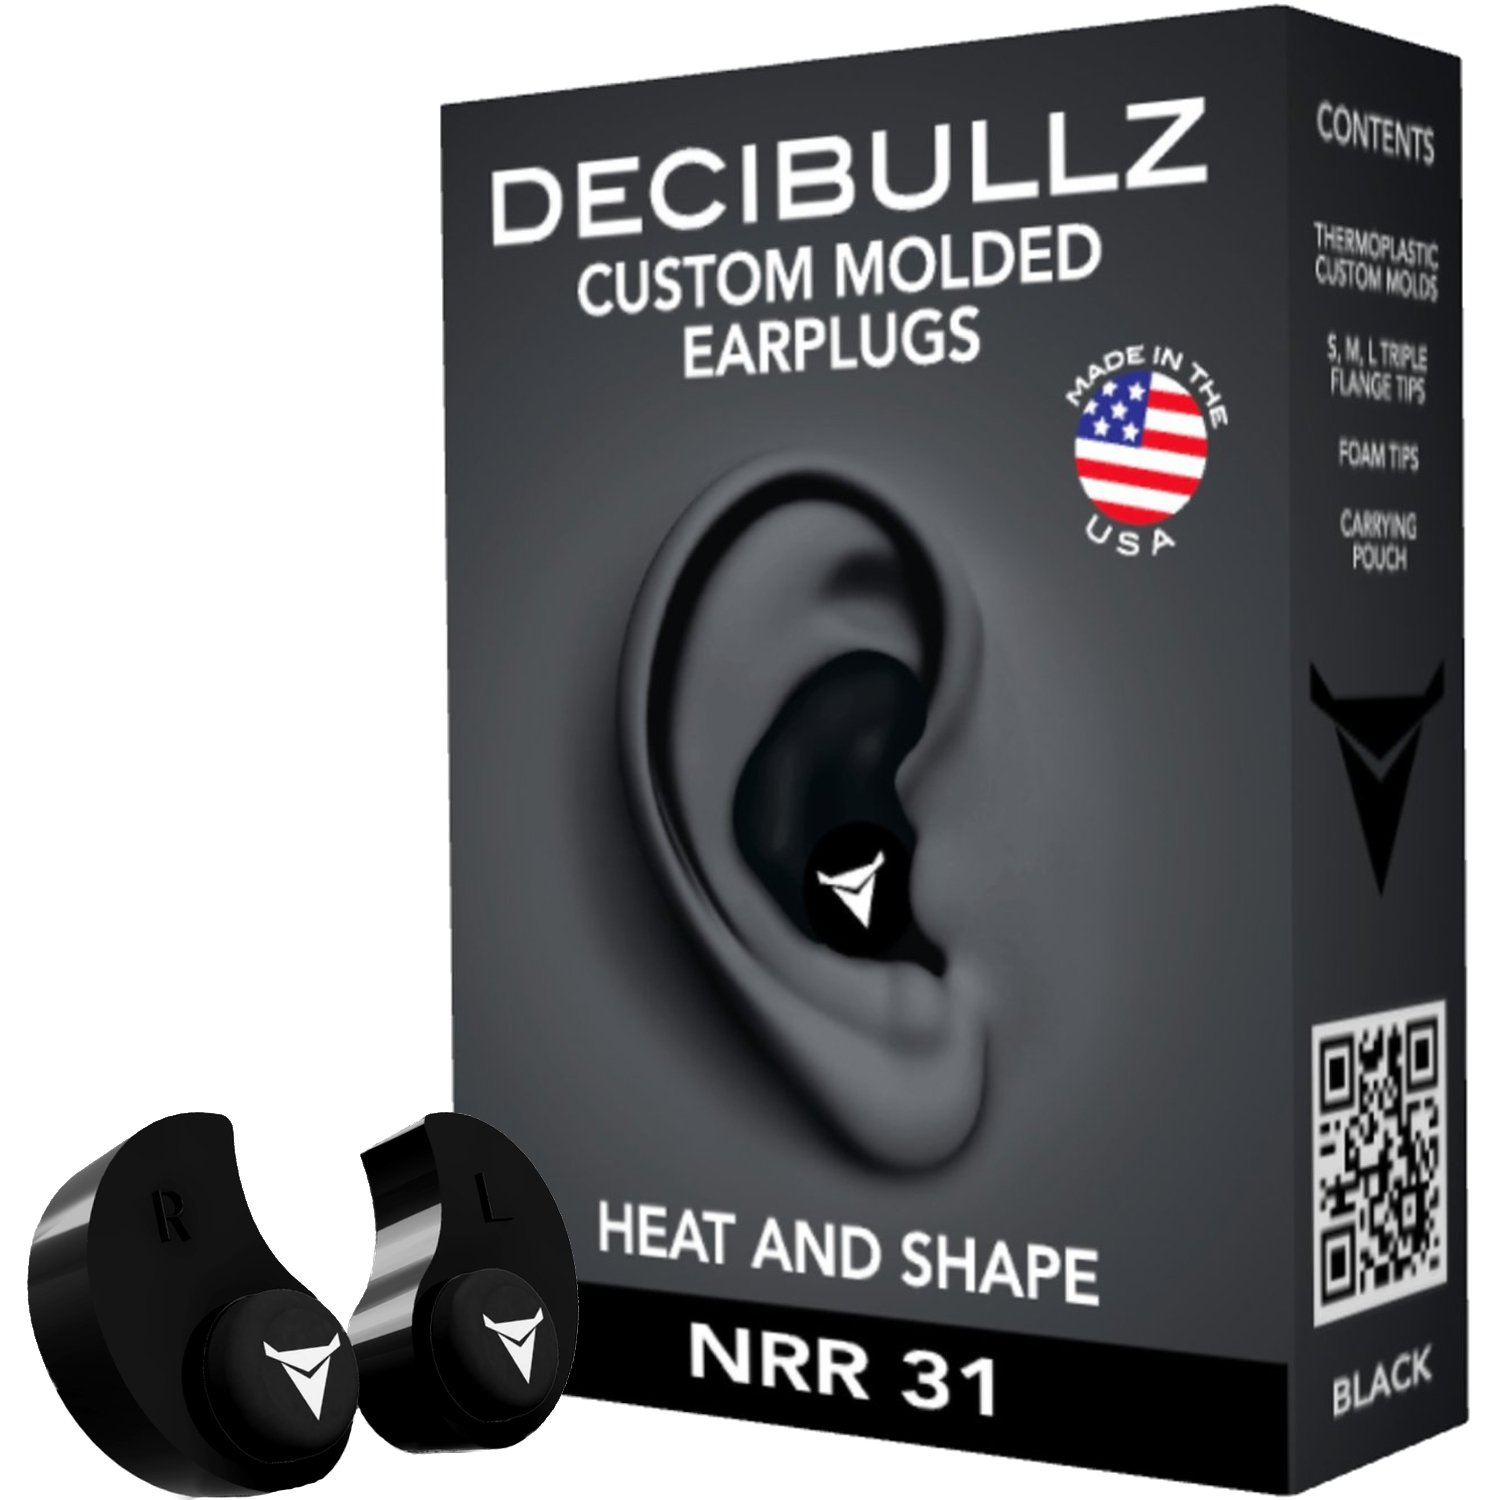 Decibullz - Custom Molded Earplugs, 31dB Highest NRR, Comfortable Hearing Protection for Shooting, Travel, Swimming, Work and Concerts (Black) by Decibullz